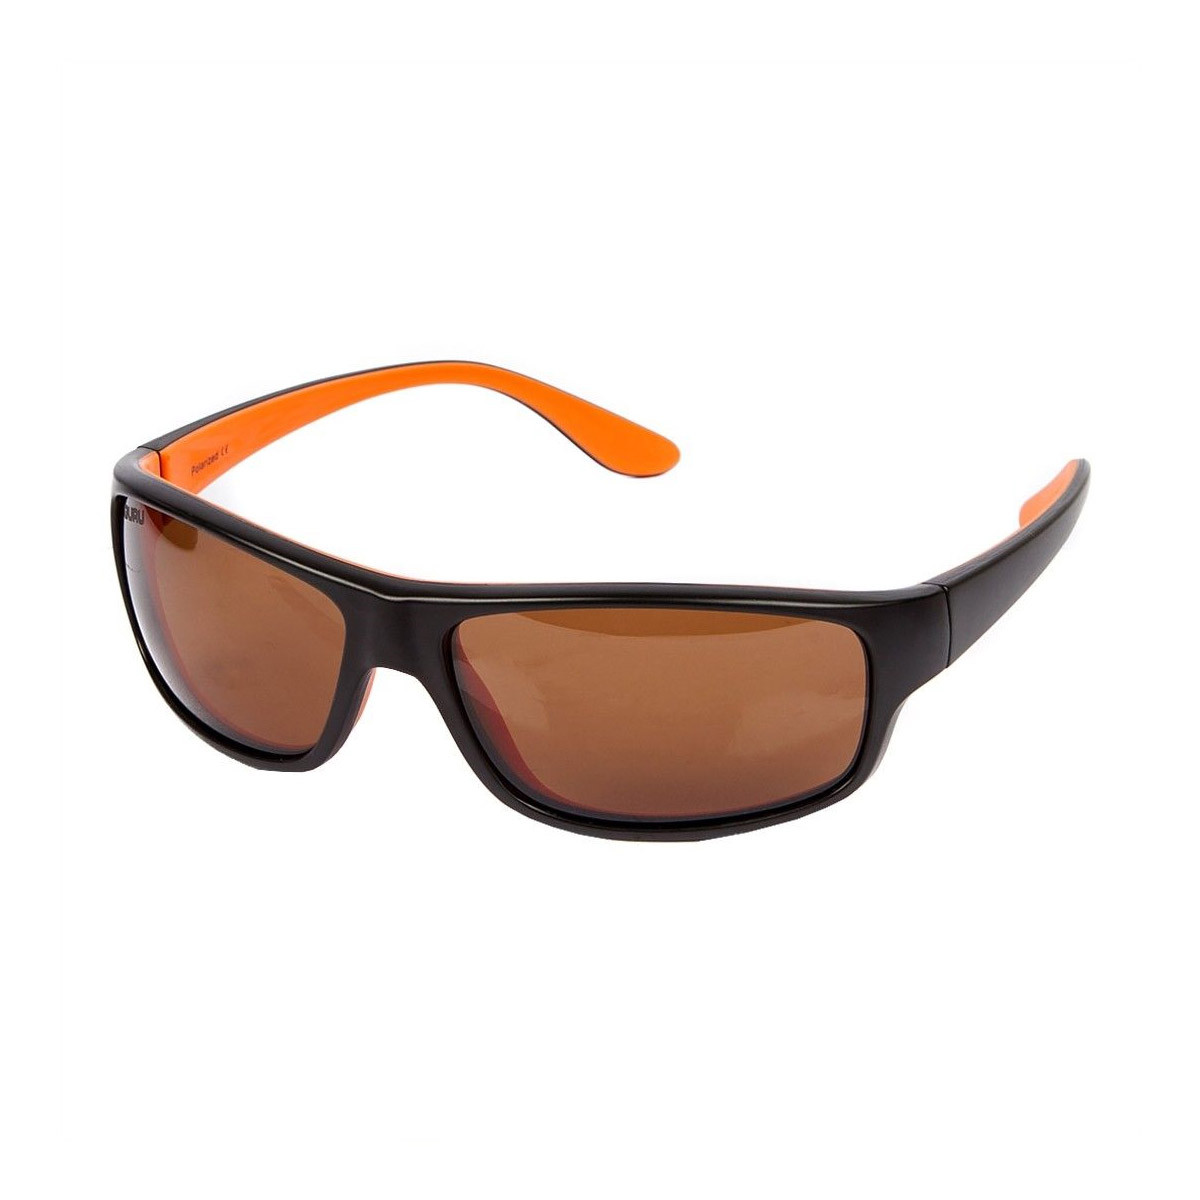 Guru competition pro glasses